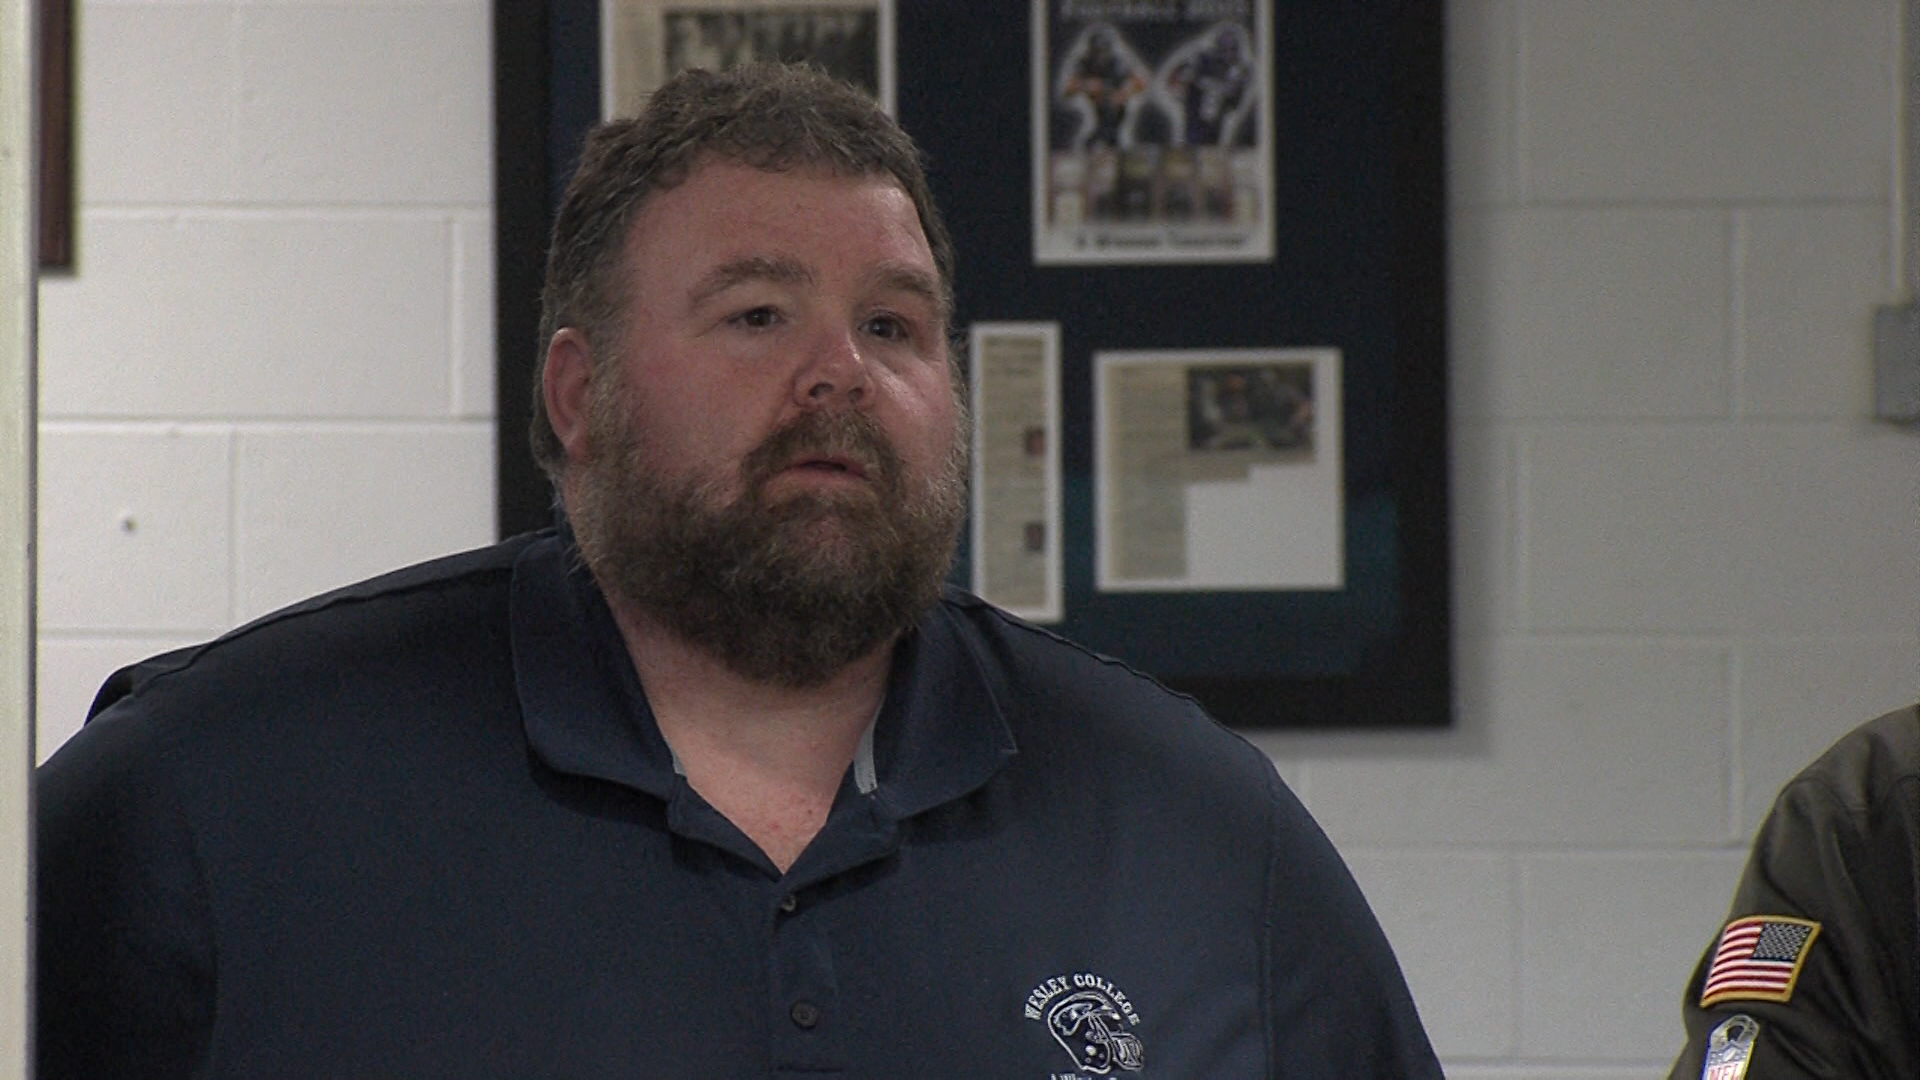 Wesley College To Induct Mike Drass